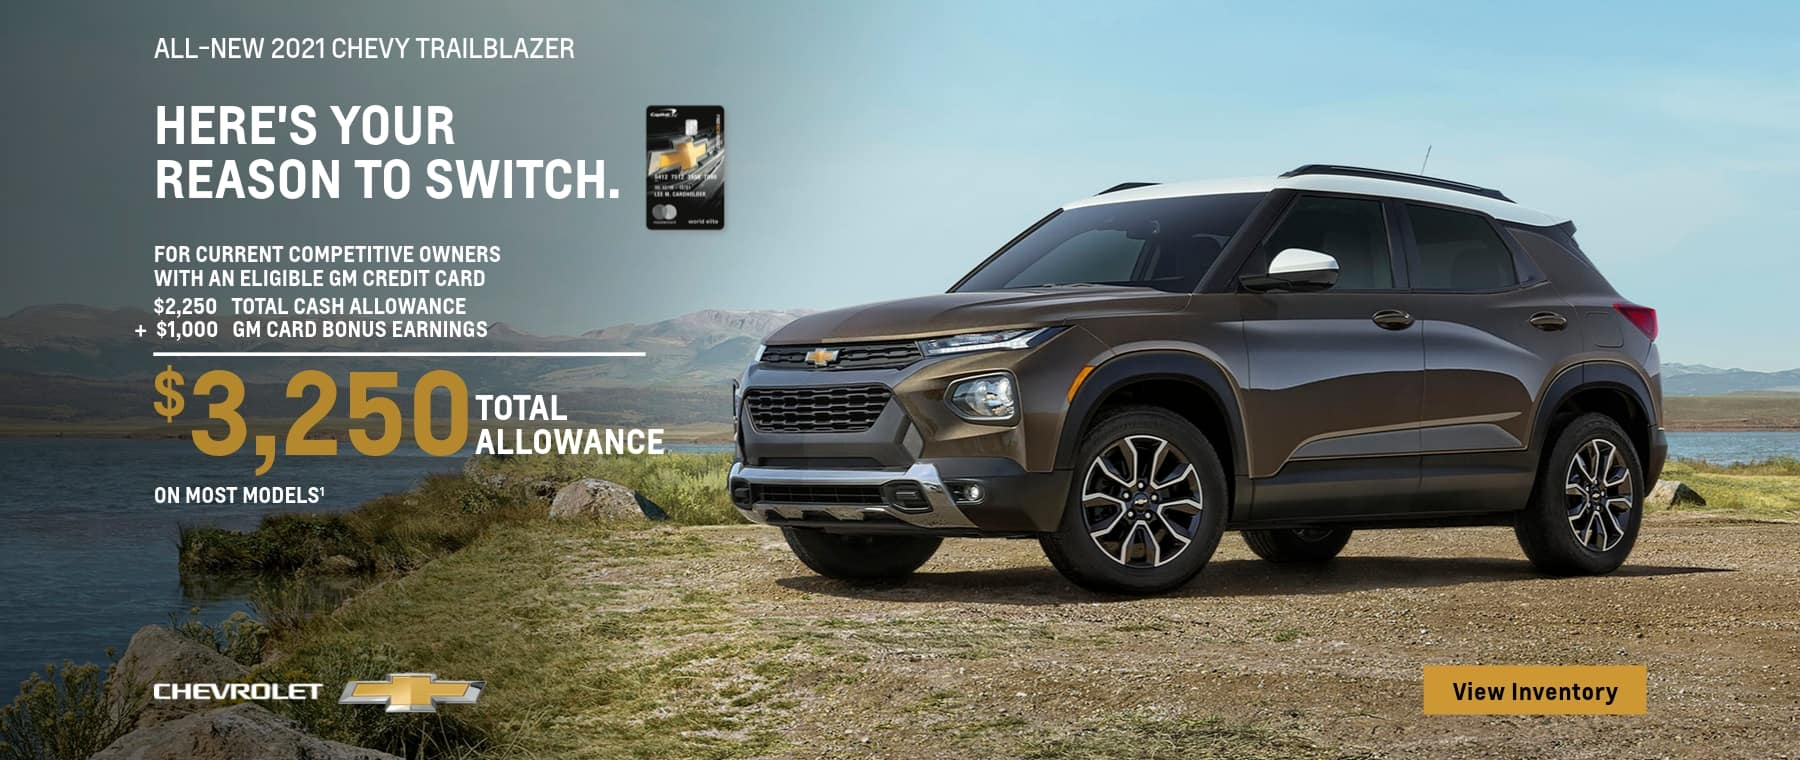 all-new 2021 chevy trailblazer for current competitive owners with an eligible gm credit card $2,250 total cash allowance + $1,000 gm card bonus earnings chevrolet $3,250 total allowance view inventory on most models